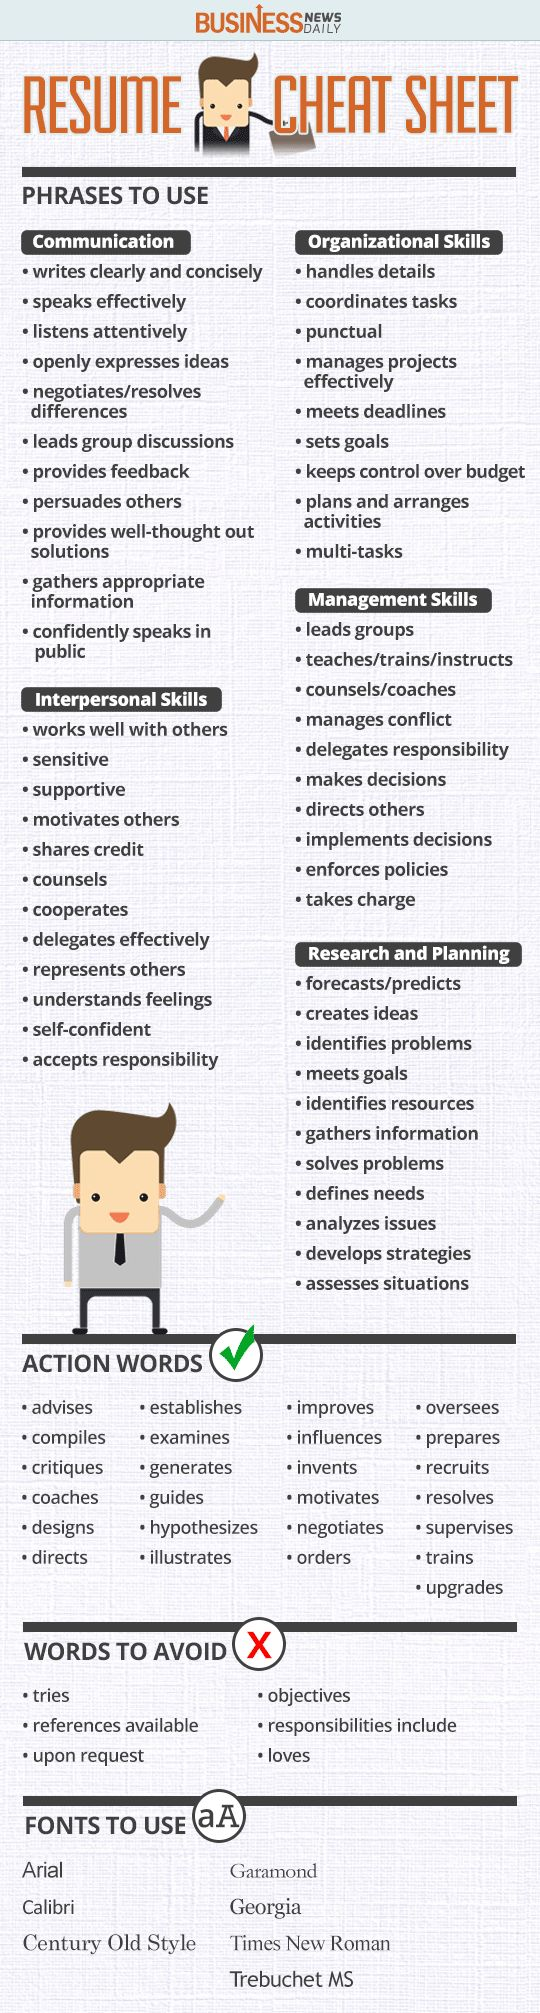 Opposenewapstandardsus  Marvelous  Ideas About Resume On Pinterest  Cv Format Resume  With Remarkable Resume Cheat Sheet Infographic Andrews Almost Done With A Complete Unit On Employment Which With Astonishing Copy Resume Also Usajobs Resume Template In Addition Different Kinds Of Resumes And Accounting Specialist Resume As Well As Resume Sample Download Additionally College Student Internship Resume From Pinterestcom With Opposenewapstandardsus  Remarkable  Ideas About Resume On Pinterest  Cv Format Resume  With Astonishing Resume Cheat Sheet Infographic Andrews Almost Done With A Complete Unit On Employment Which And Marvelous Copy Resume Also Usajobs Resume Template In Addition Different Kinds Of Resumes From Pinterestcom